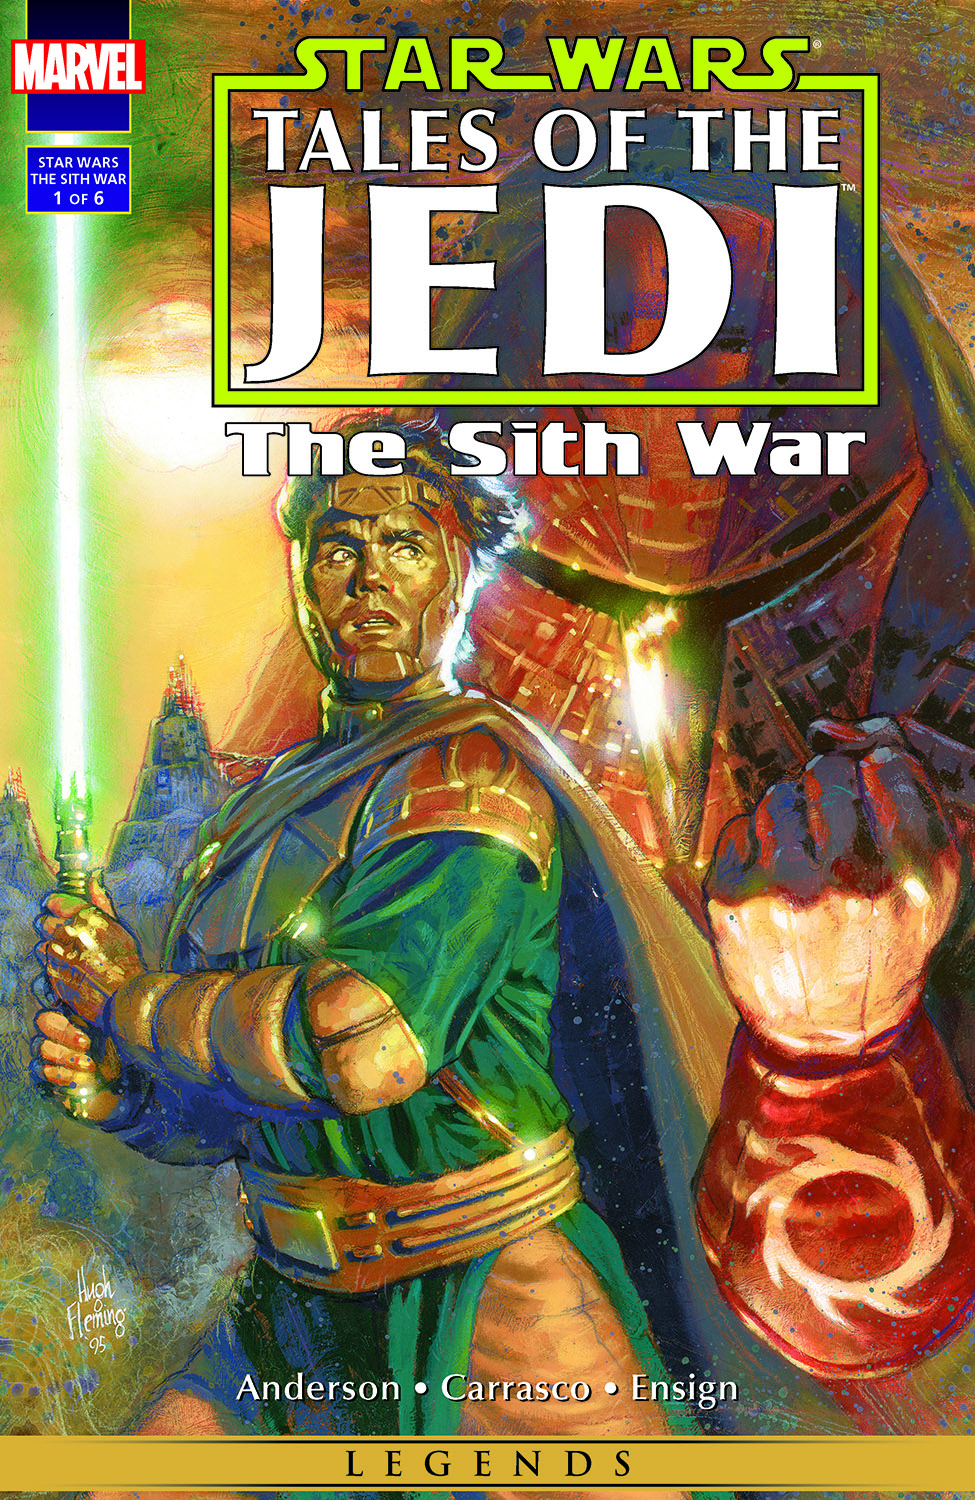 Star Wars: Tales Of The Jedi - The Sith War (1995) #1